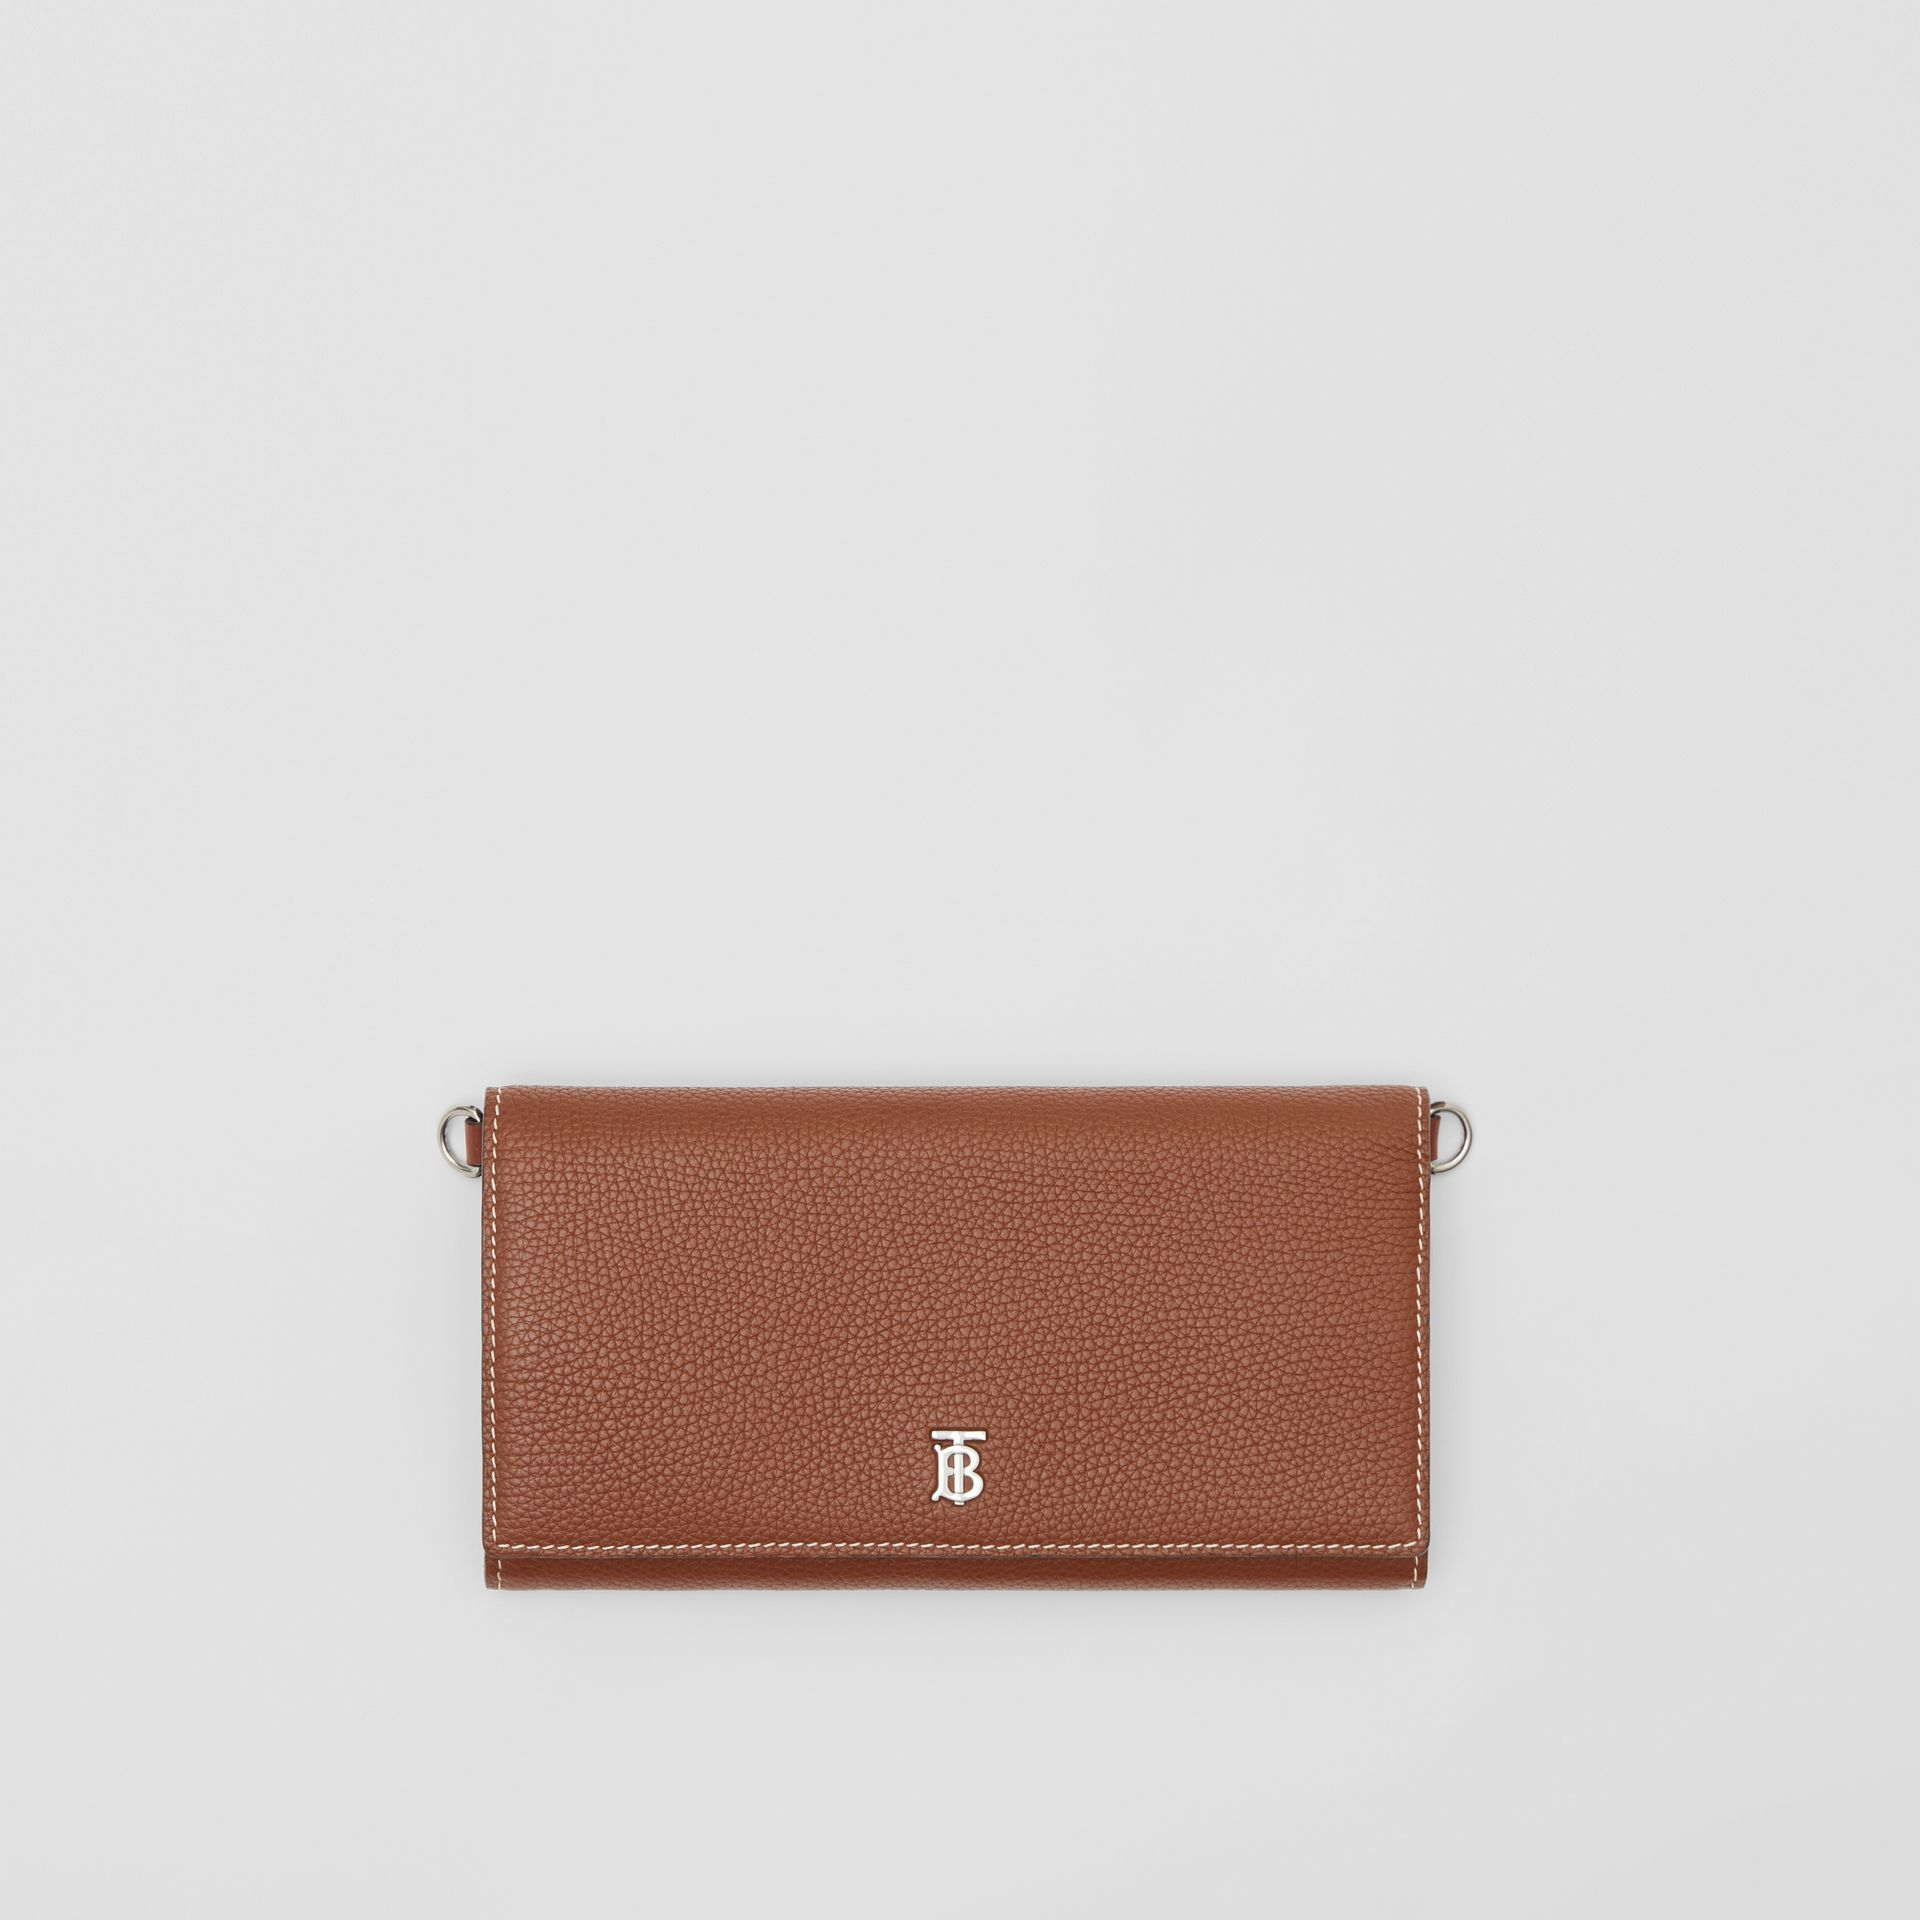 Grainy Leather Wallet with Detachable Strap in Tan | Burberry - gallery image 10